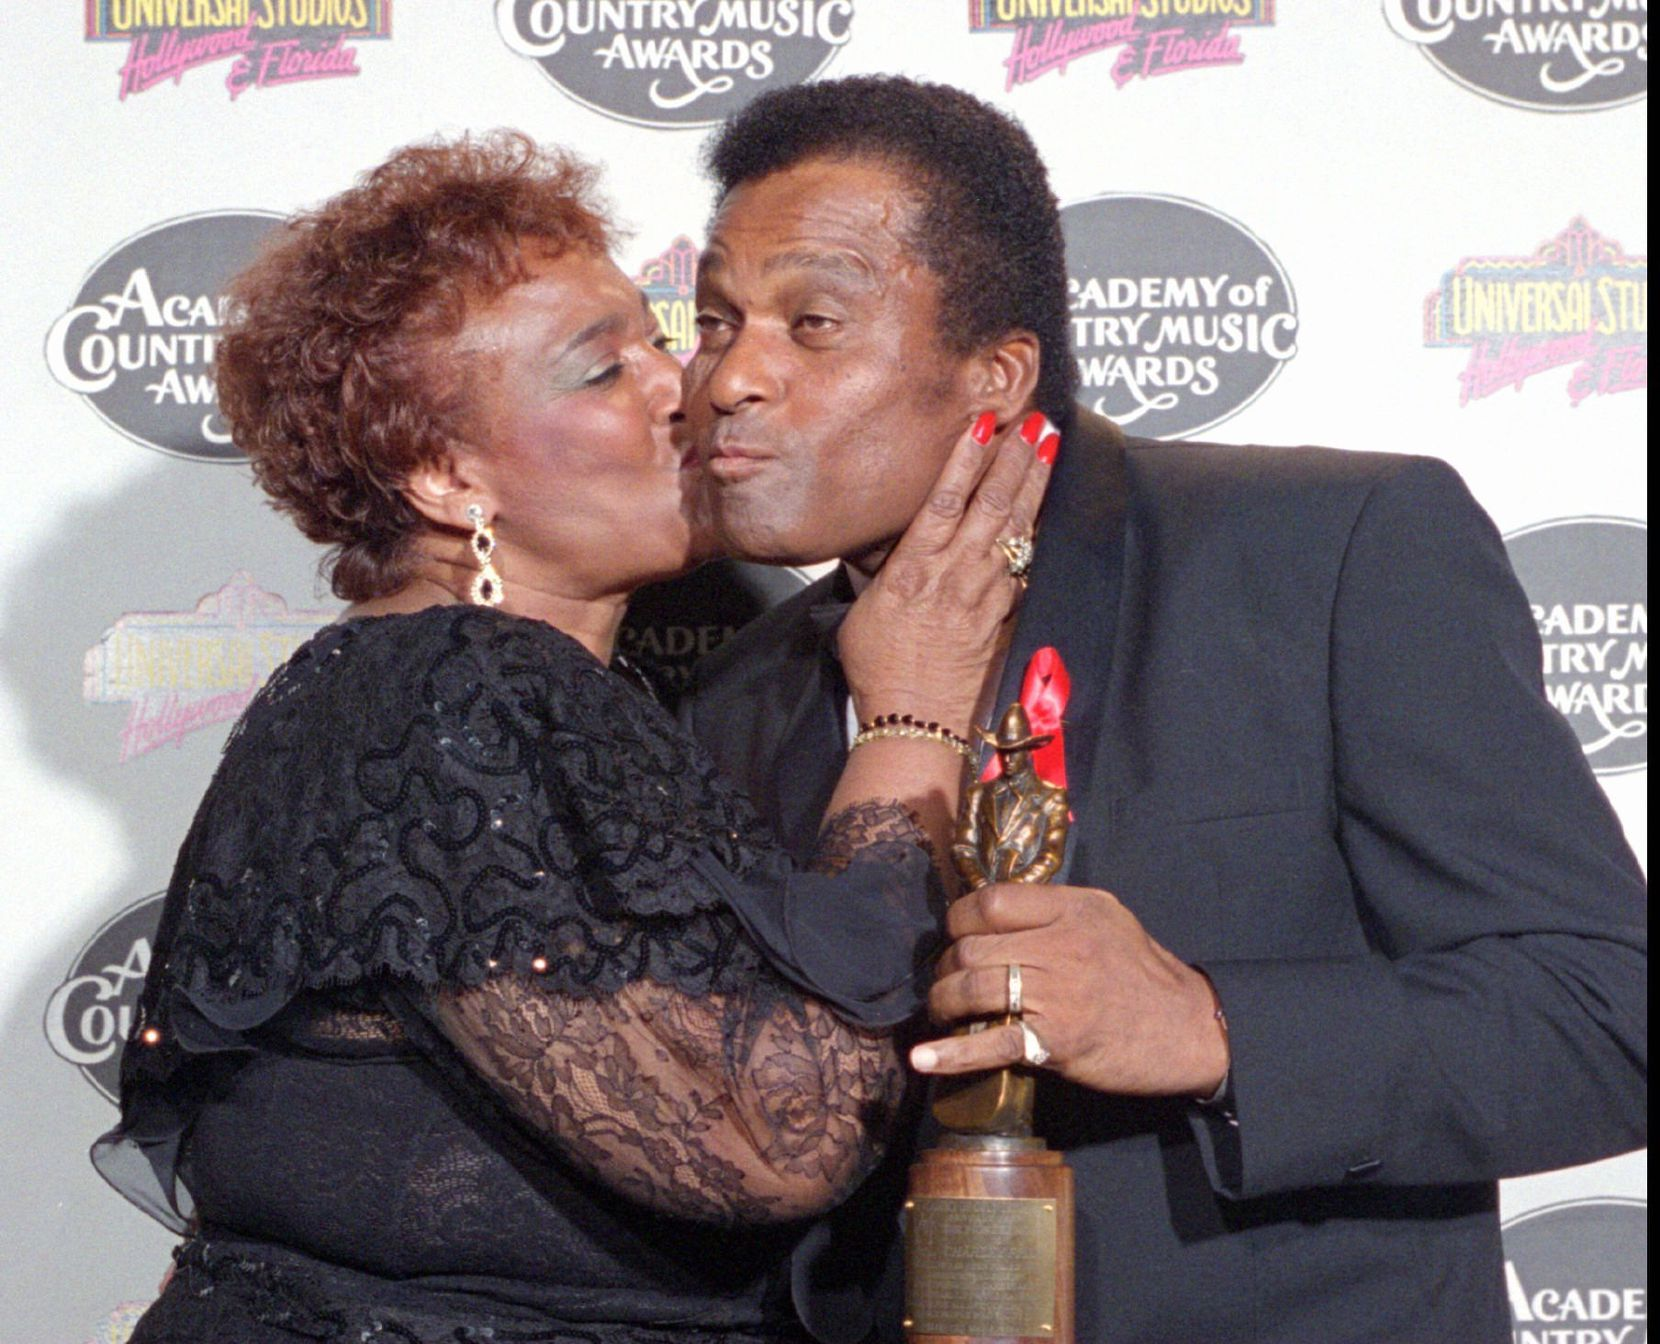 Charley Pride in 1994 getting a kiss from his wife, Rozene, after winning the Pioneer Award at the 29th Academy of Country Music Awards.